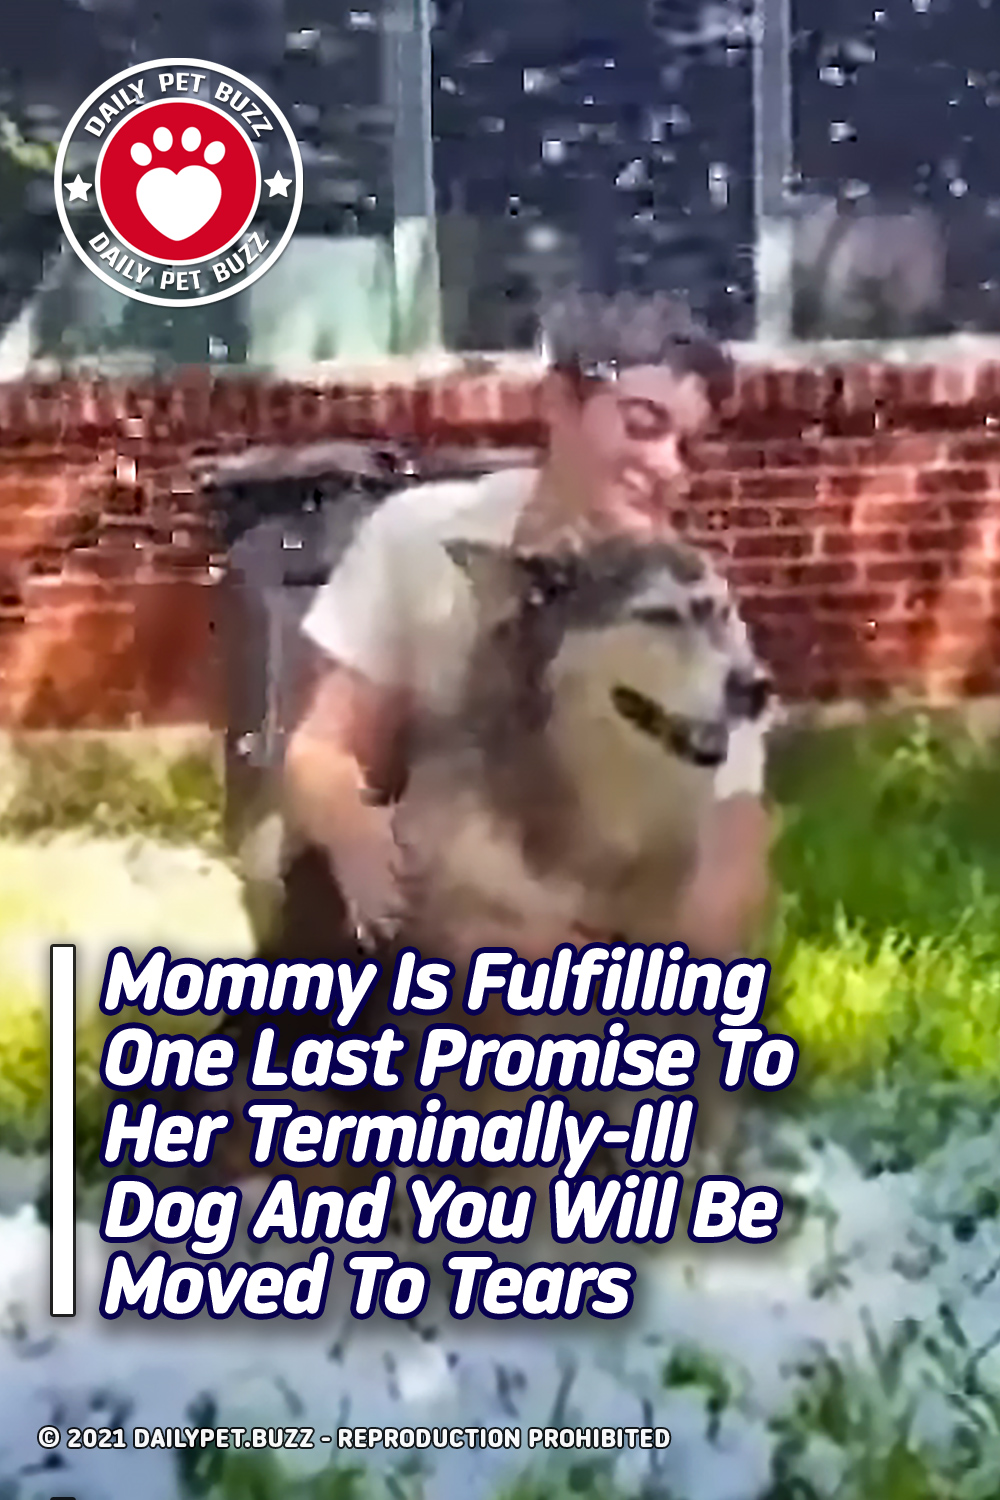 Mommy Is Fulfilling One Last Promise To Her Terminally-Ill Dog And You Will Be Moved To Tears